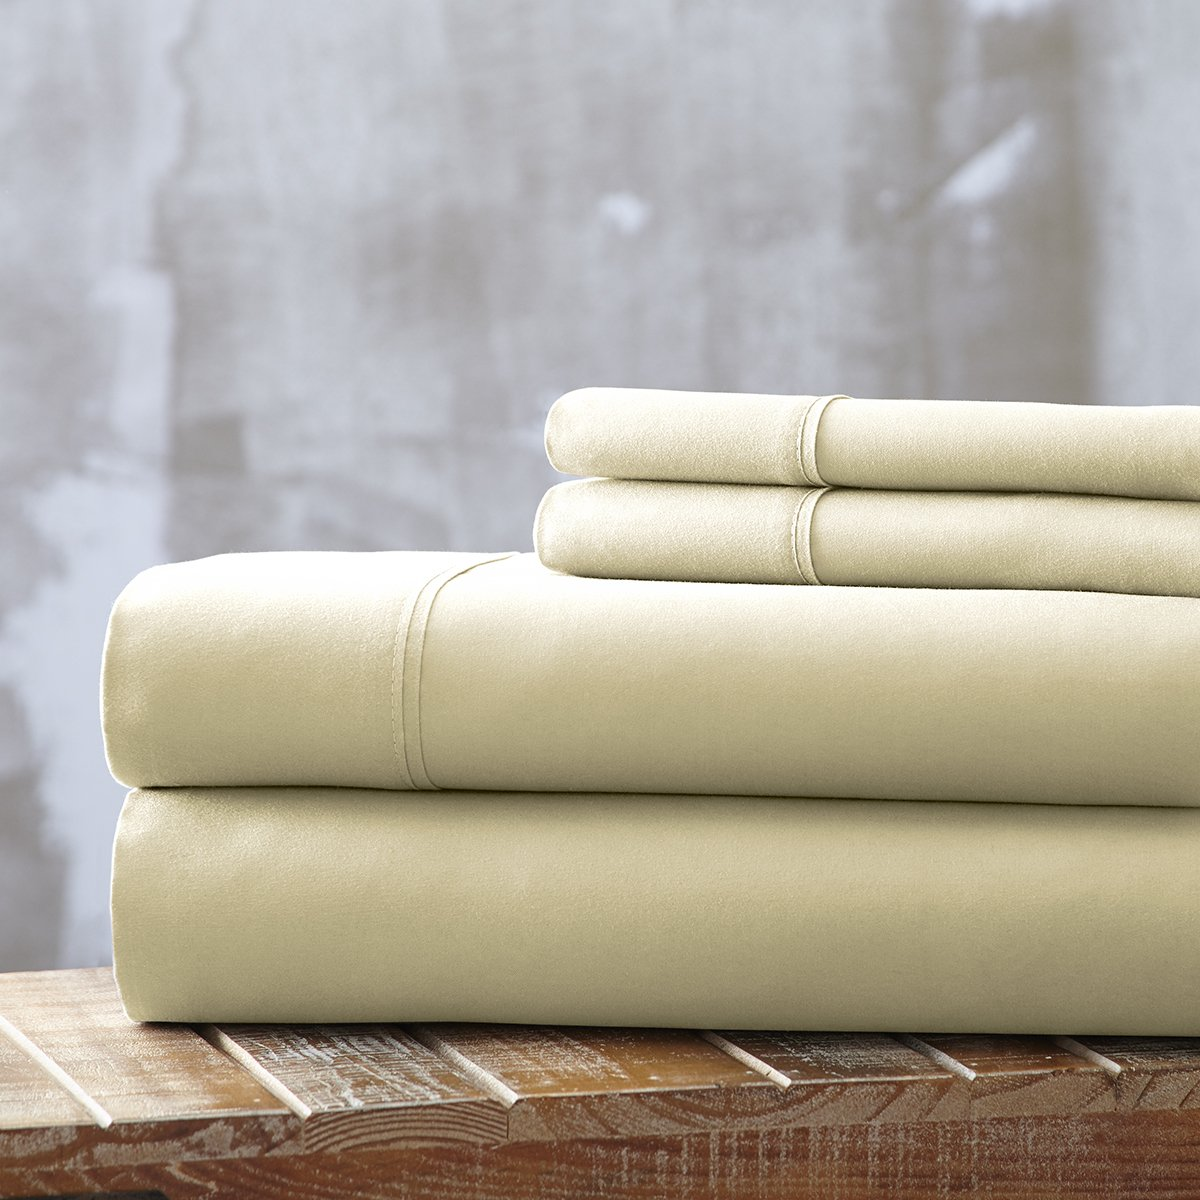 Spirit Linen, Inc Hotel 5th Ave EE-QUEEN-IVORY-4PC Queen Ivory Everyday Essentials 1800 Series 4Pc Sheet Set